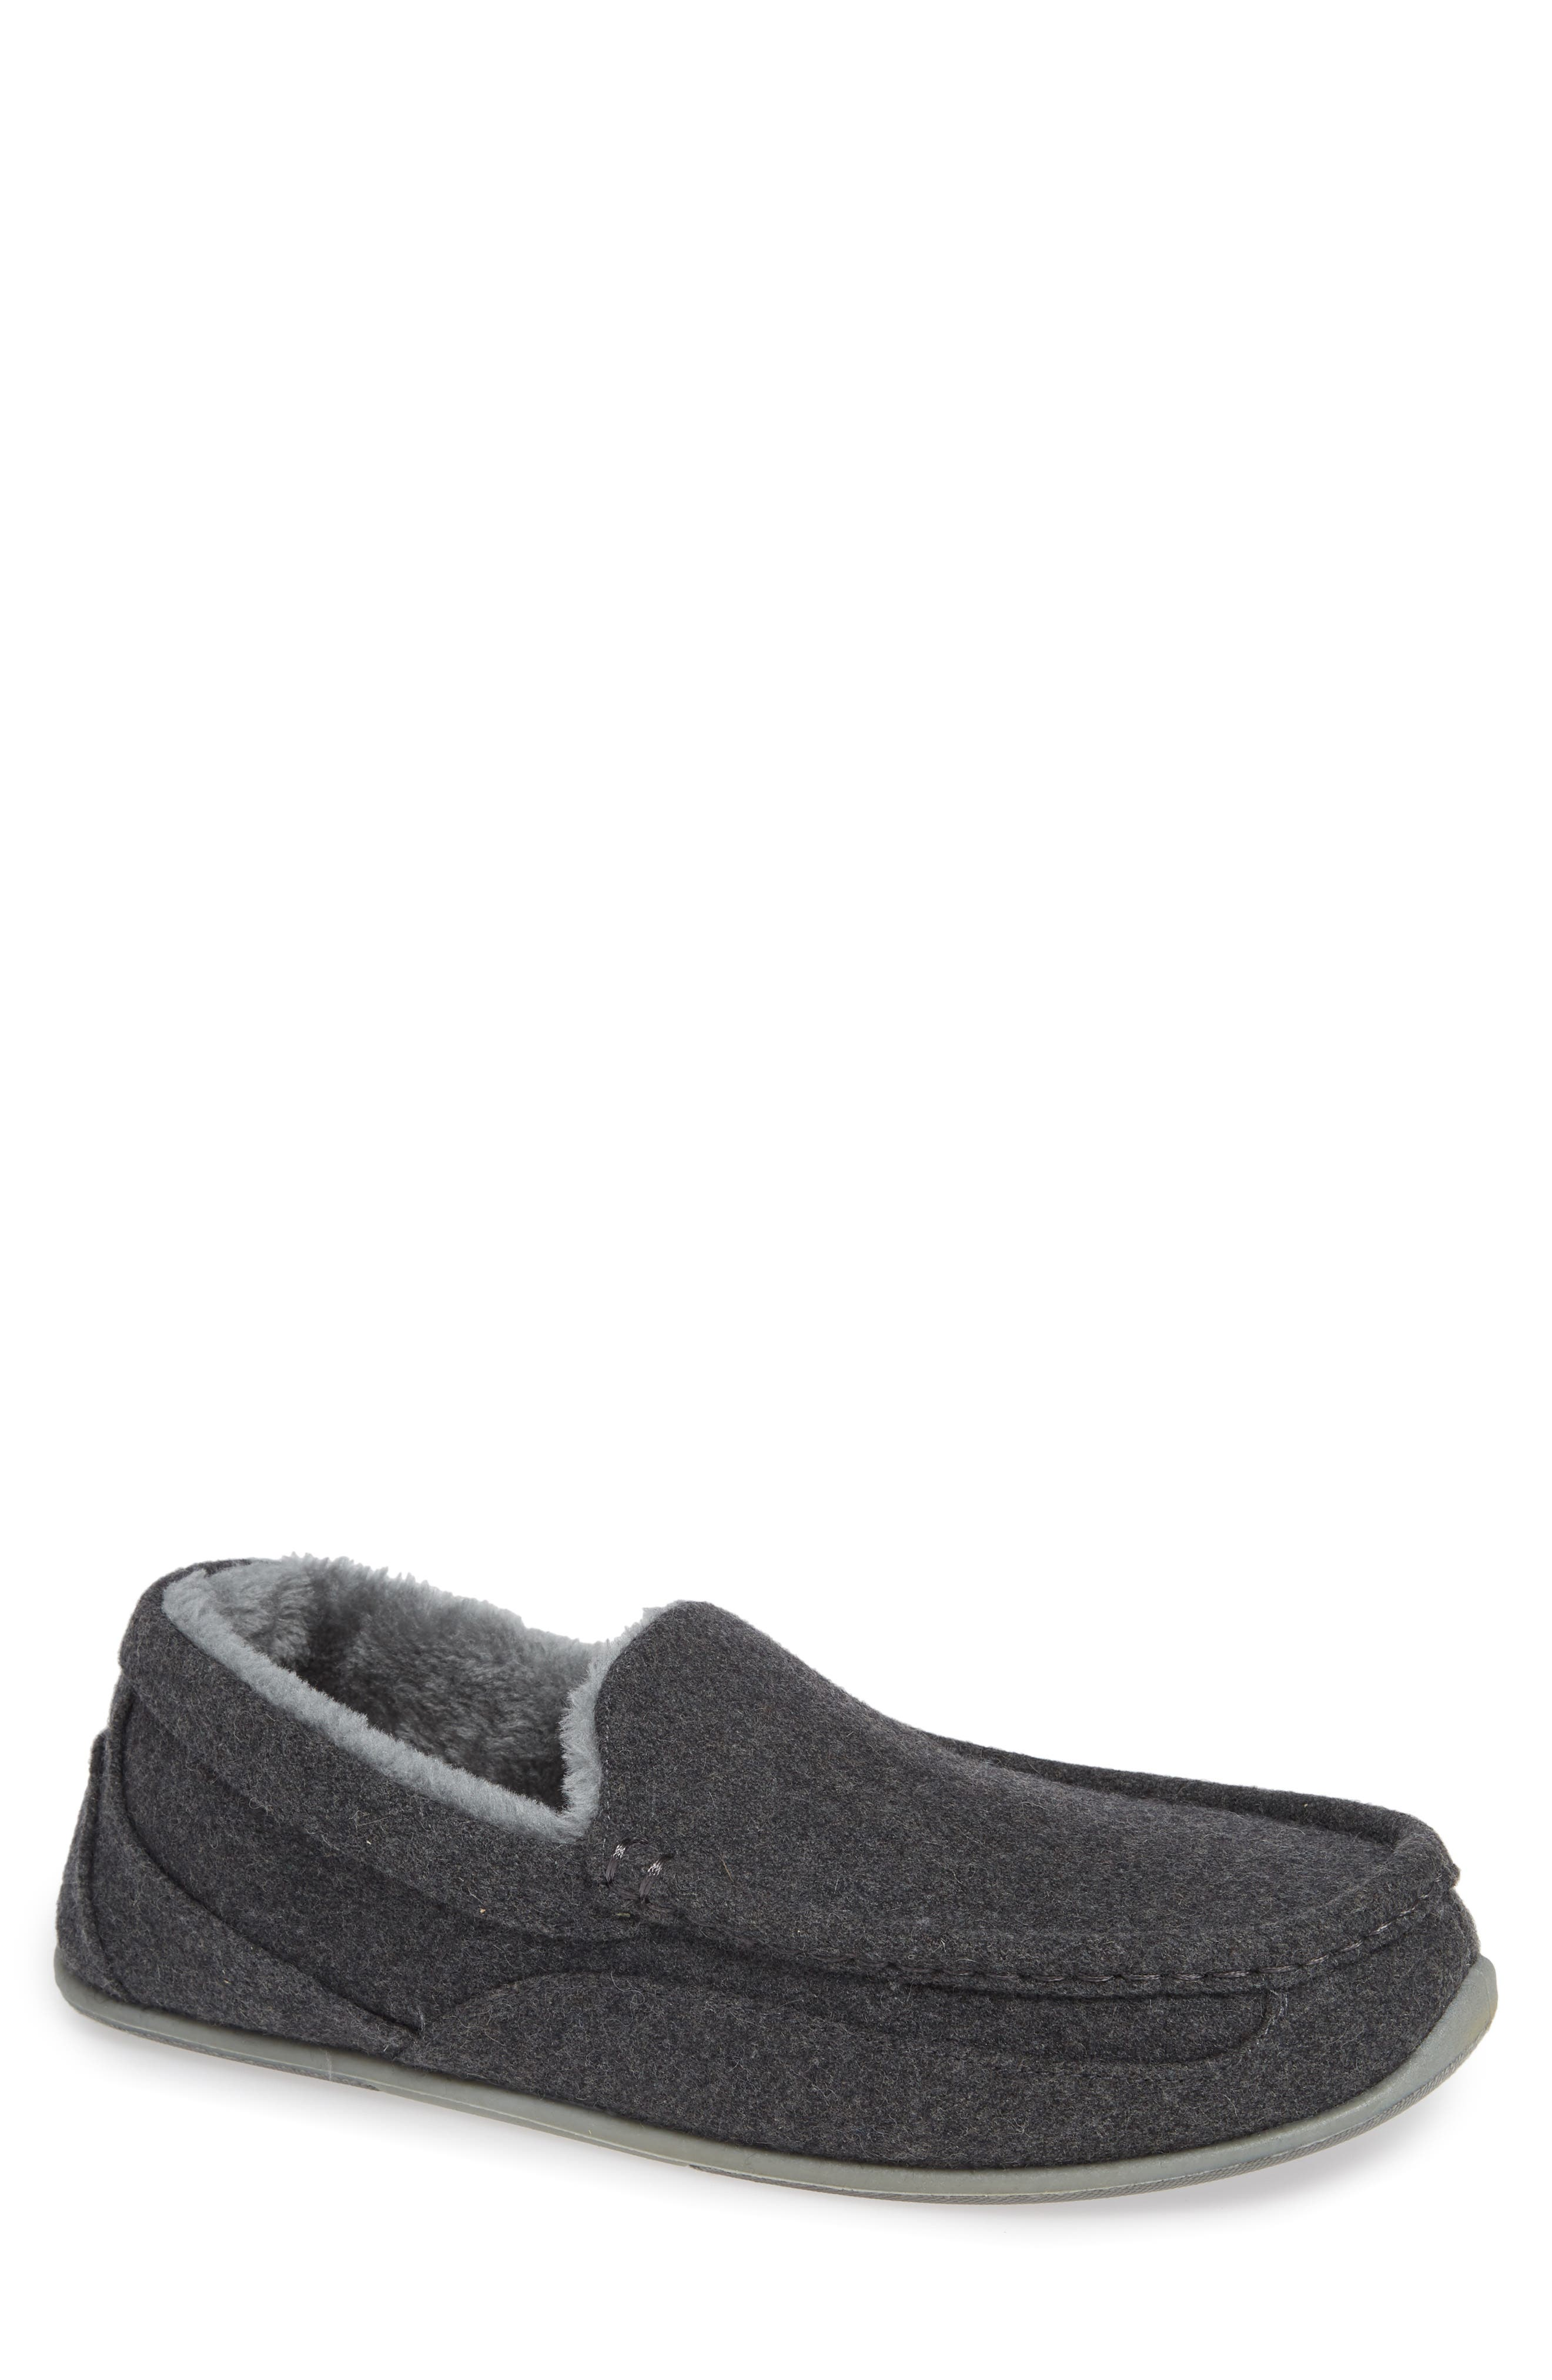 Spun Slipper,                         Main,                         color, DARK GREY